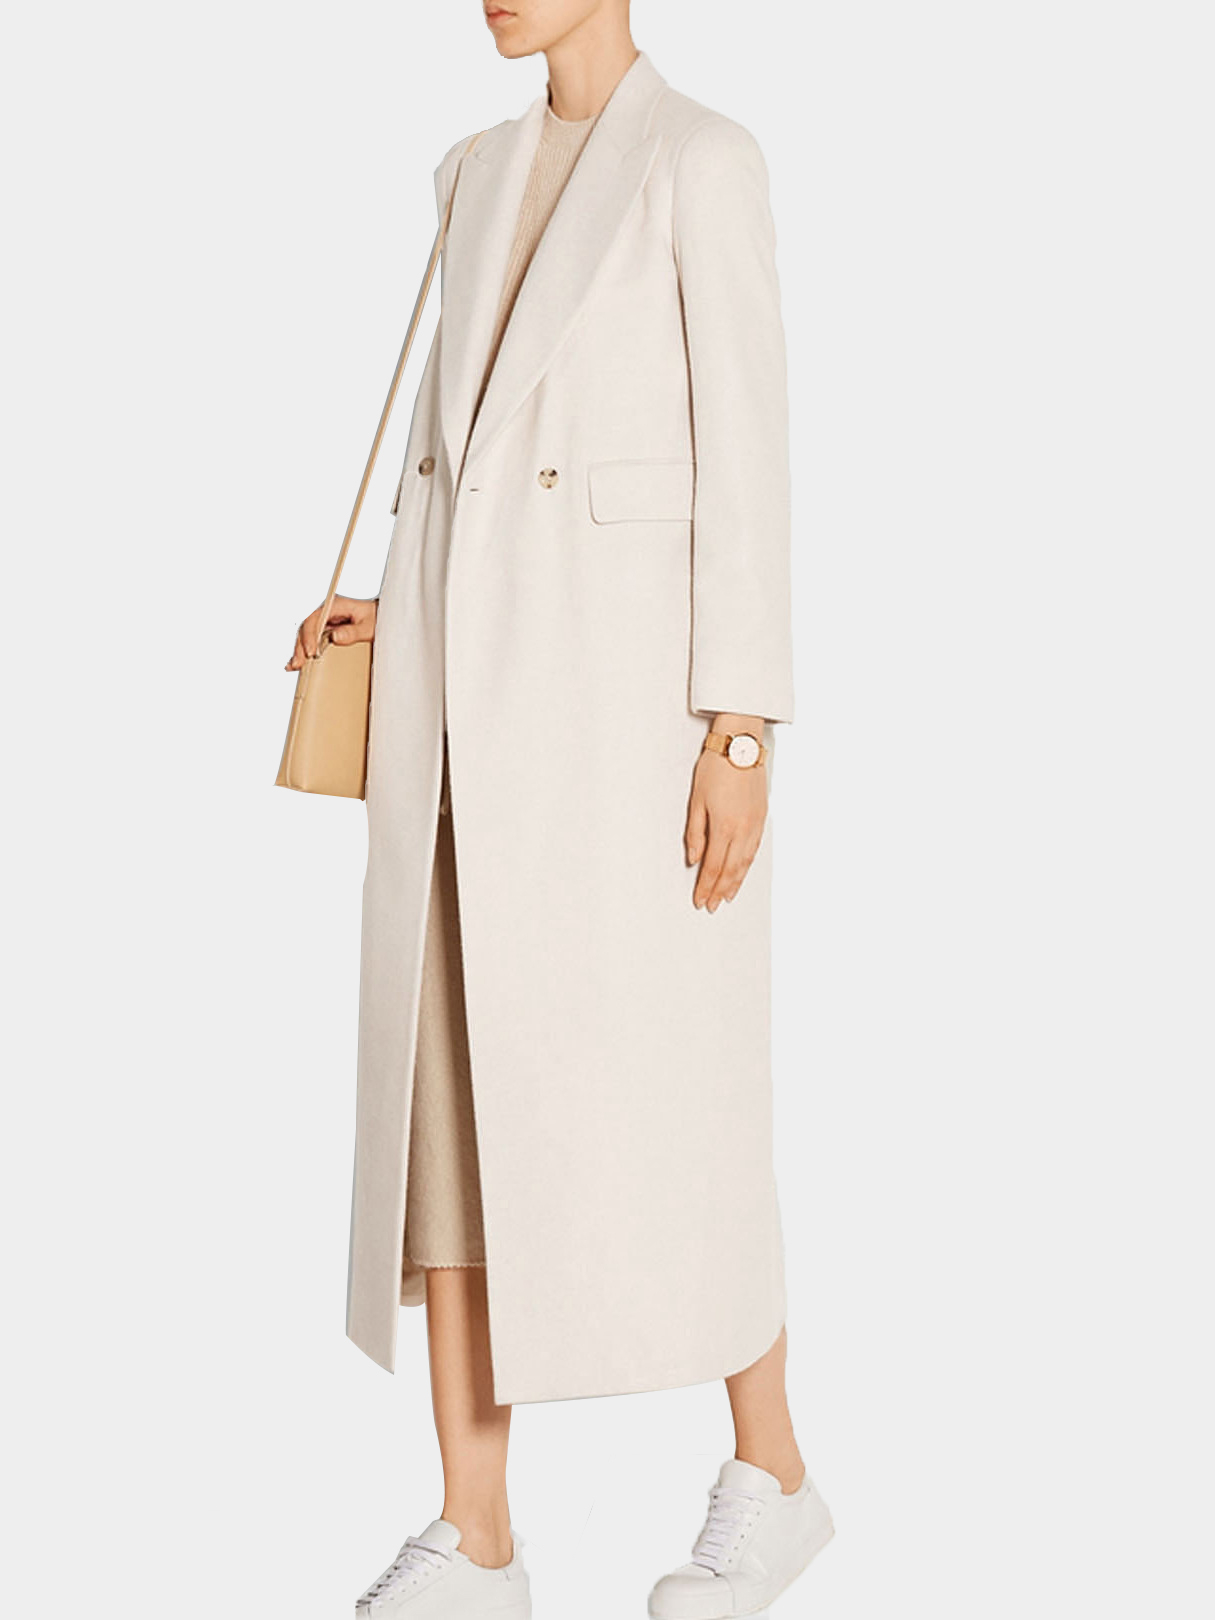 Lapel Collar Duster Coat with Double Breasted